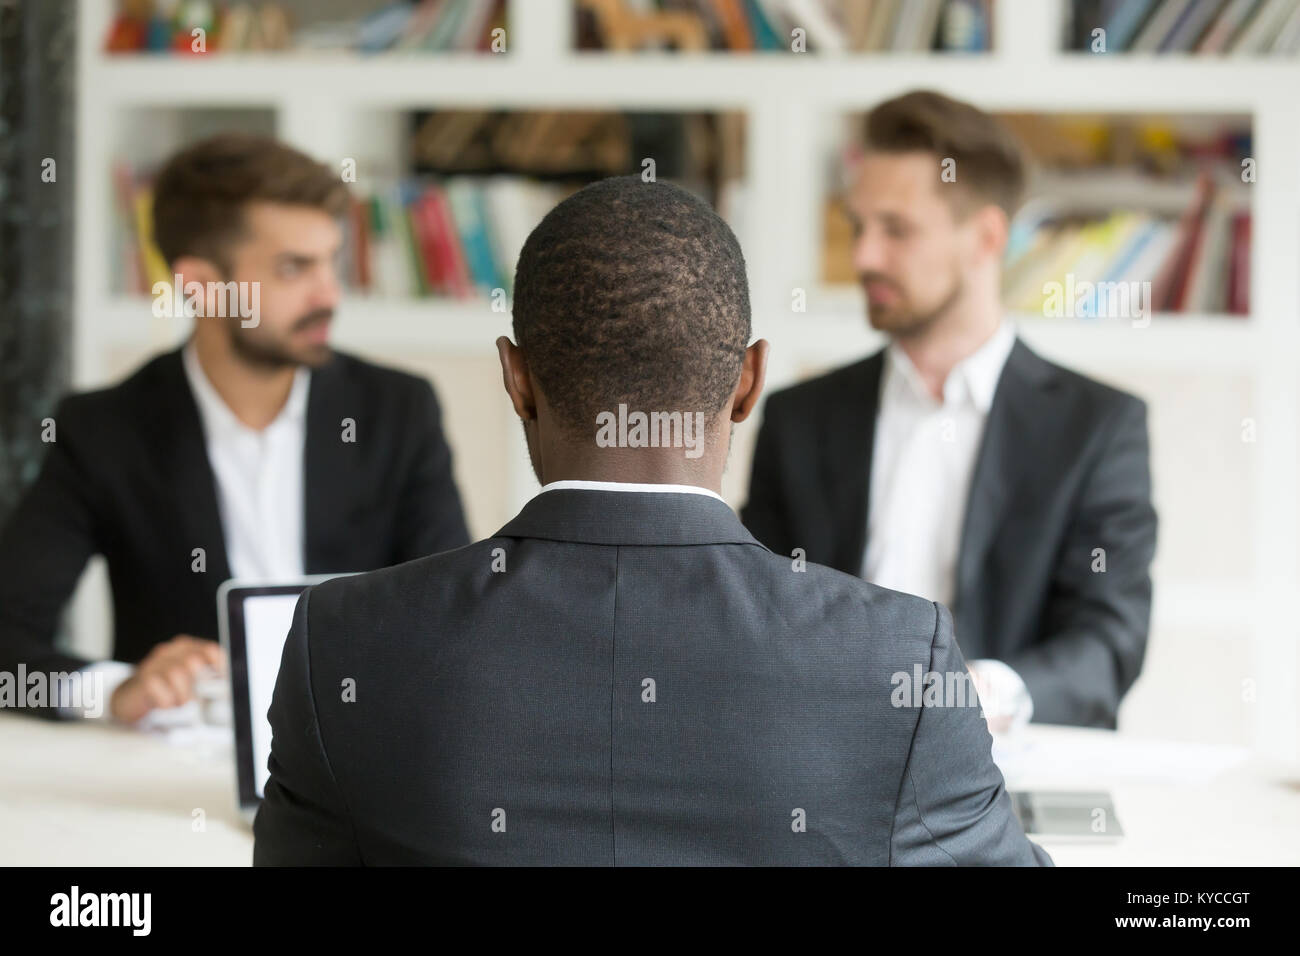 Rear view at african businessman against two caucasian men wearing suits, black vacancy candidate sitting his back - Stock Image